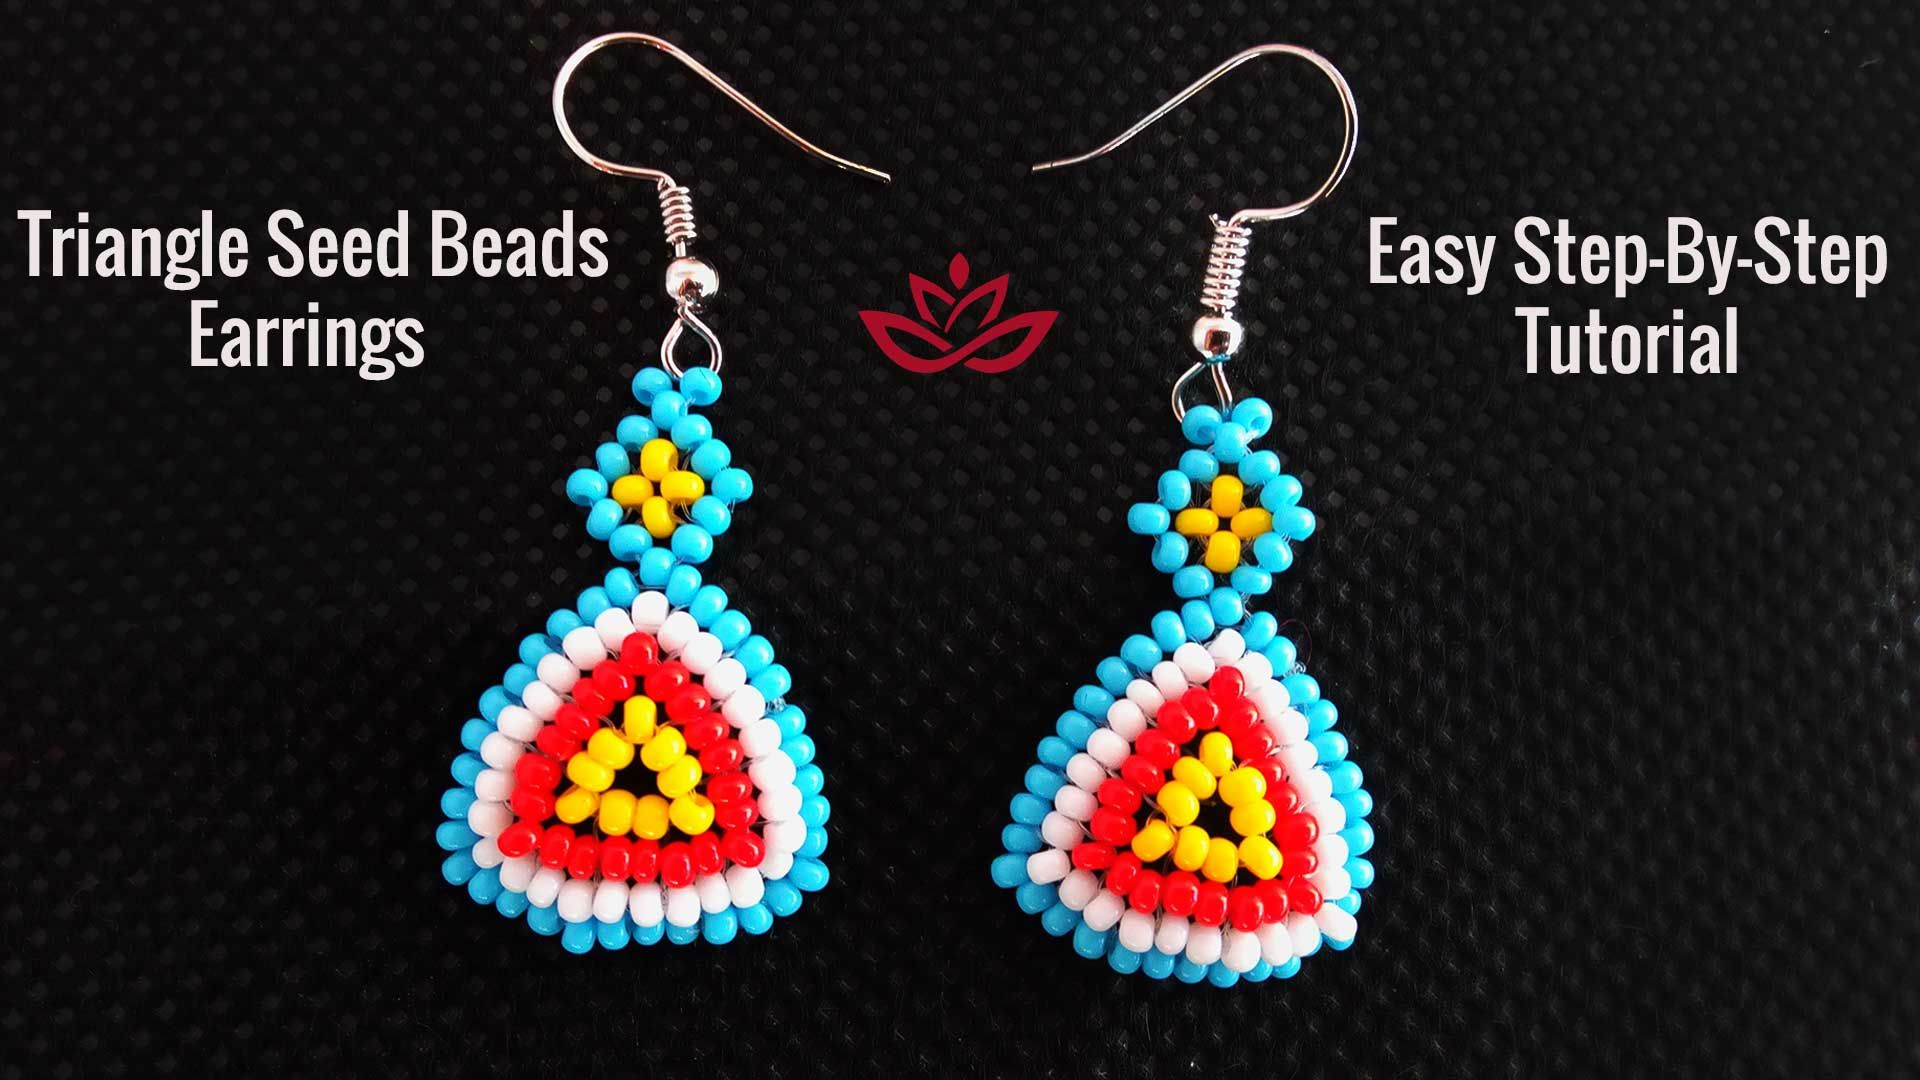 Triangle Seed Beads Earrings Tutorial How To Make Diy Seed Beads Earrings Seed Bead Tutorial Earring Tutorial Beading Tutorials